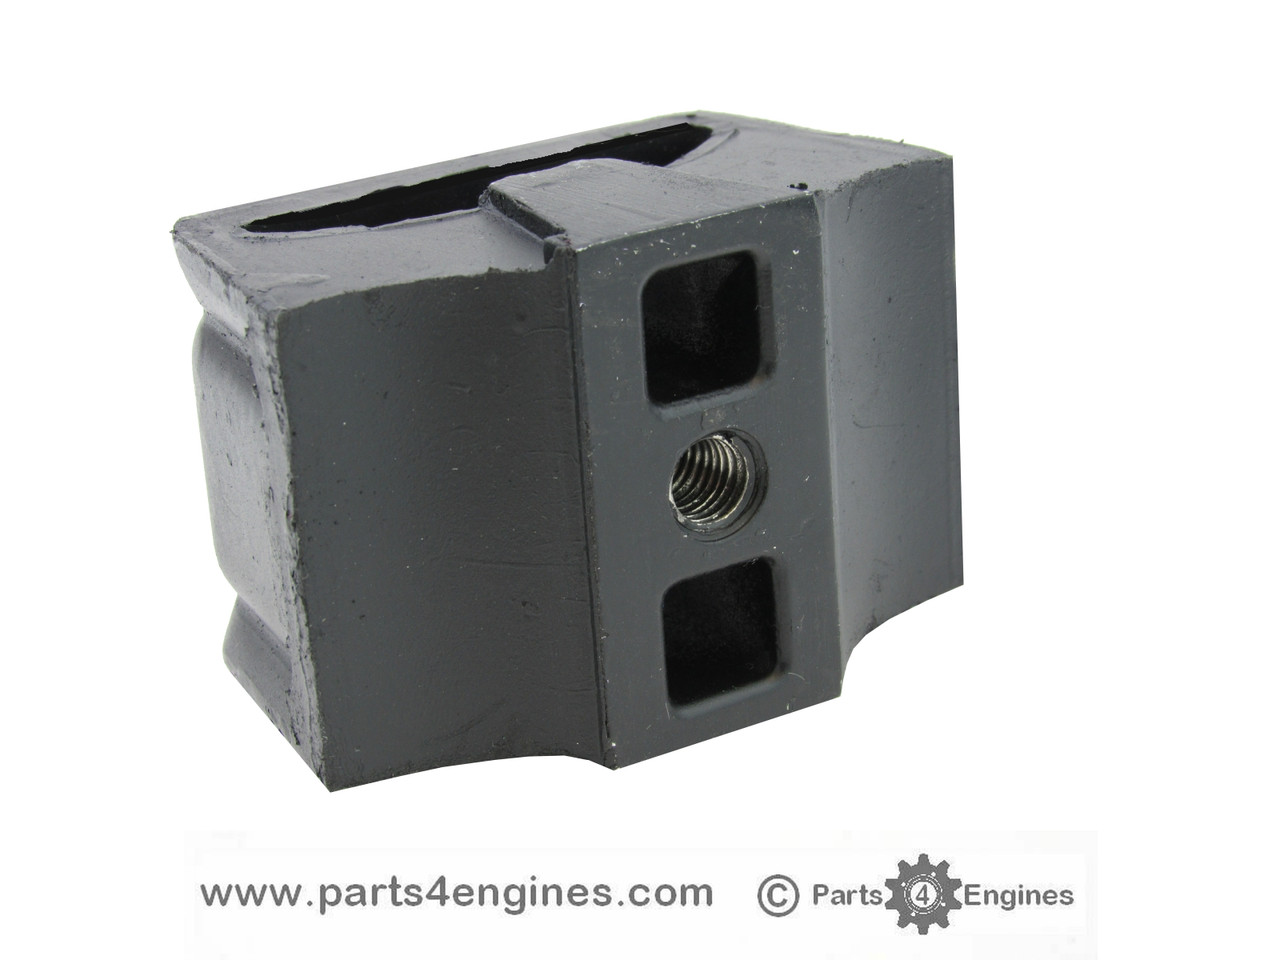 Volvo Penta MD2030 engine mounts - parts4engines.com